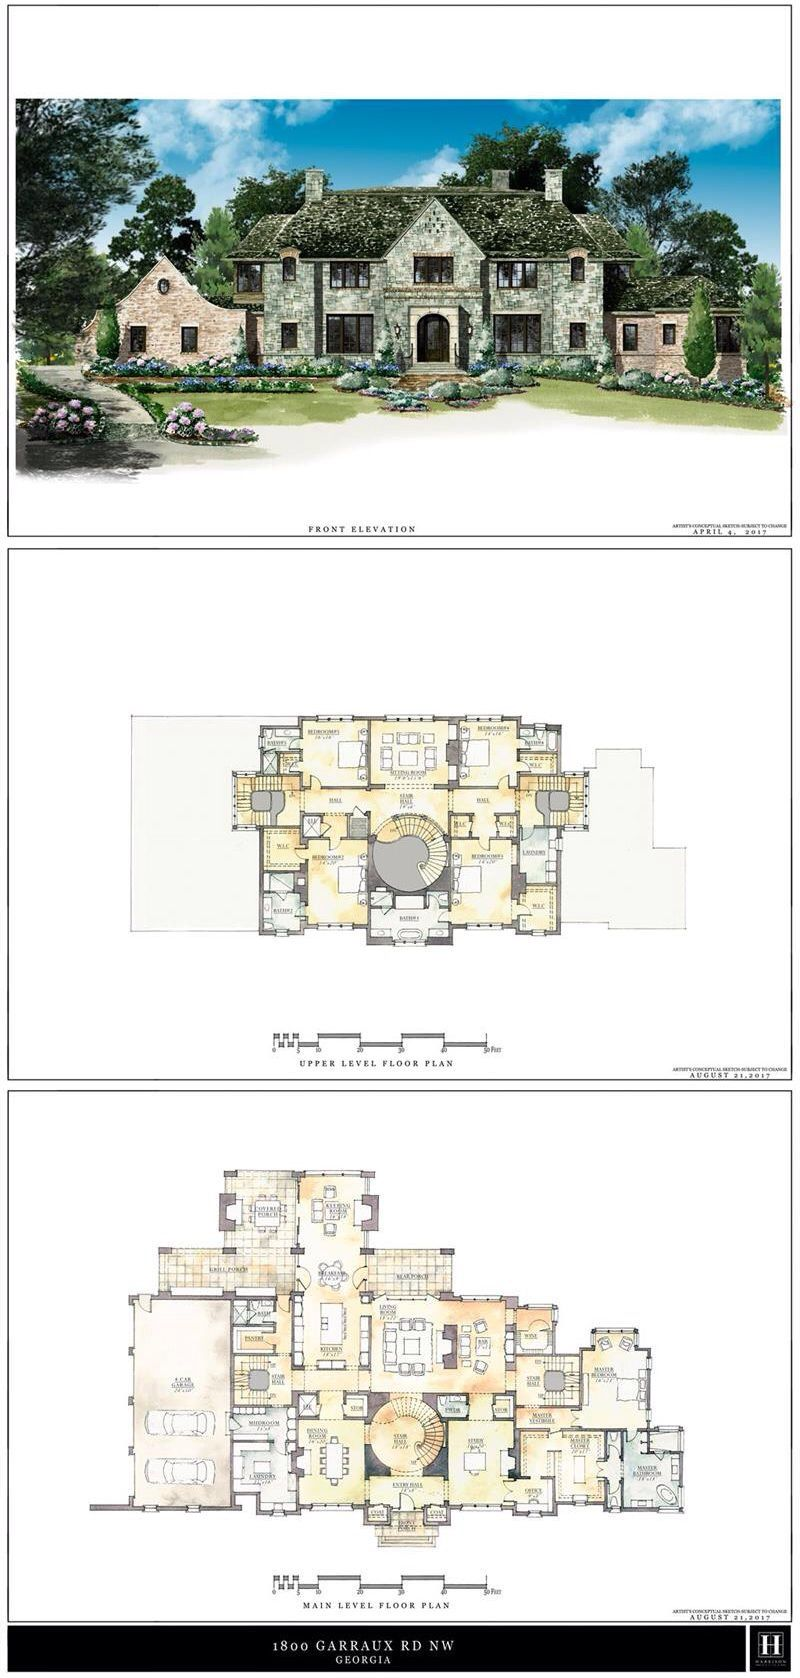 1800 Garraux Road Nw Atlanta Dorsey Alston Luxury House Plans Mansion Floor Plan House Plans